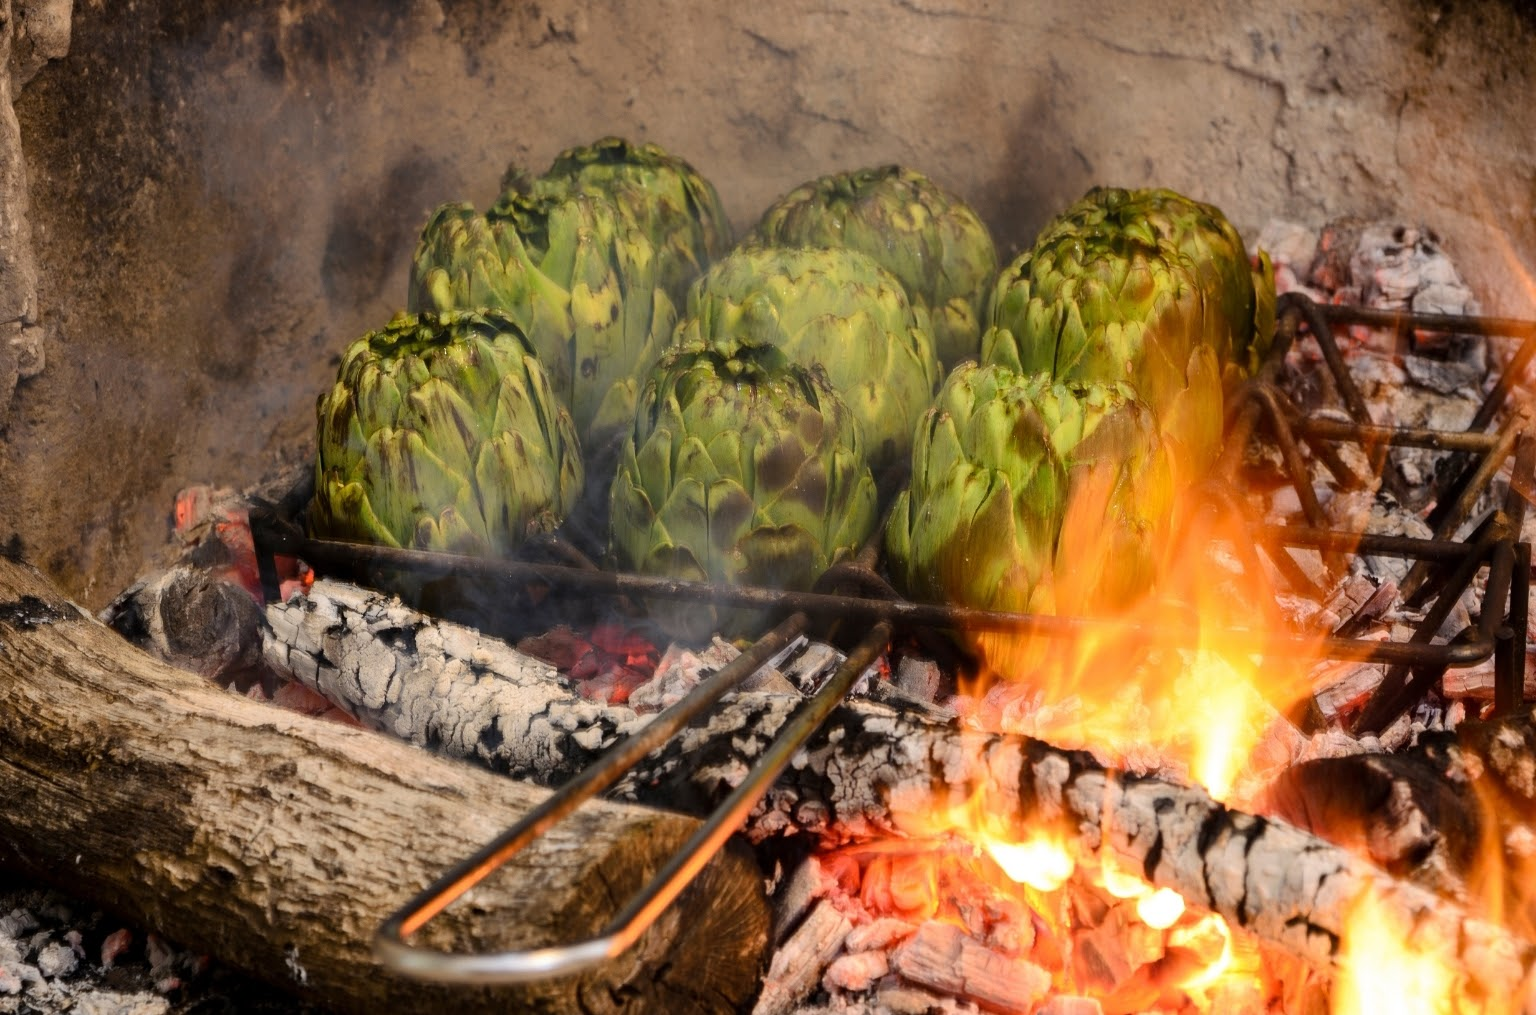 Open fire barbecue is typically Catalan